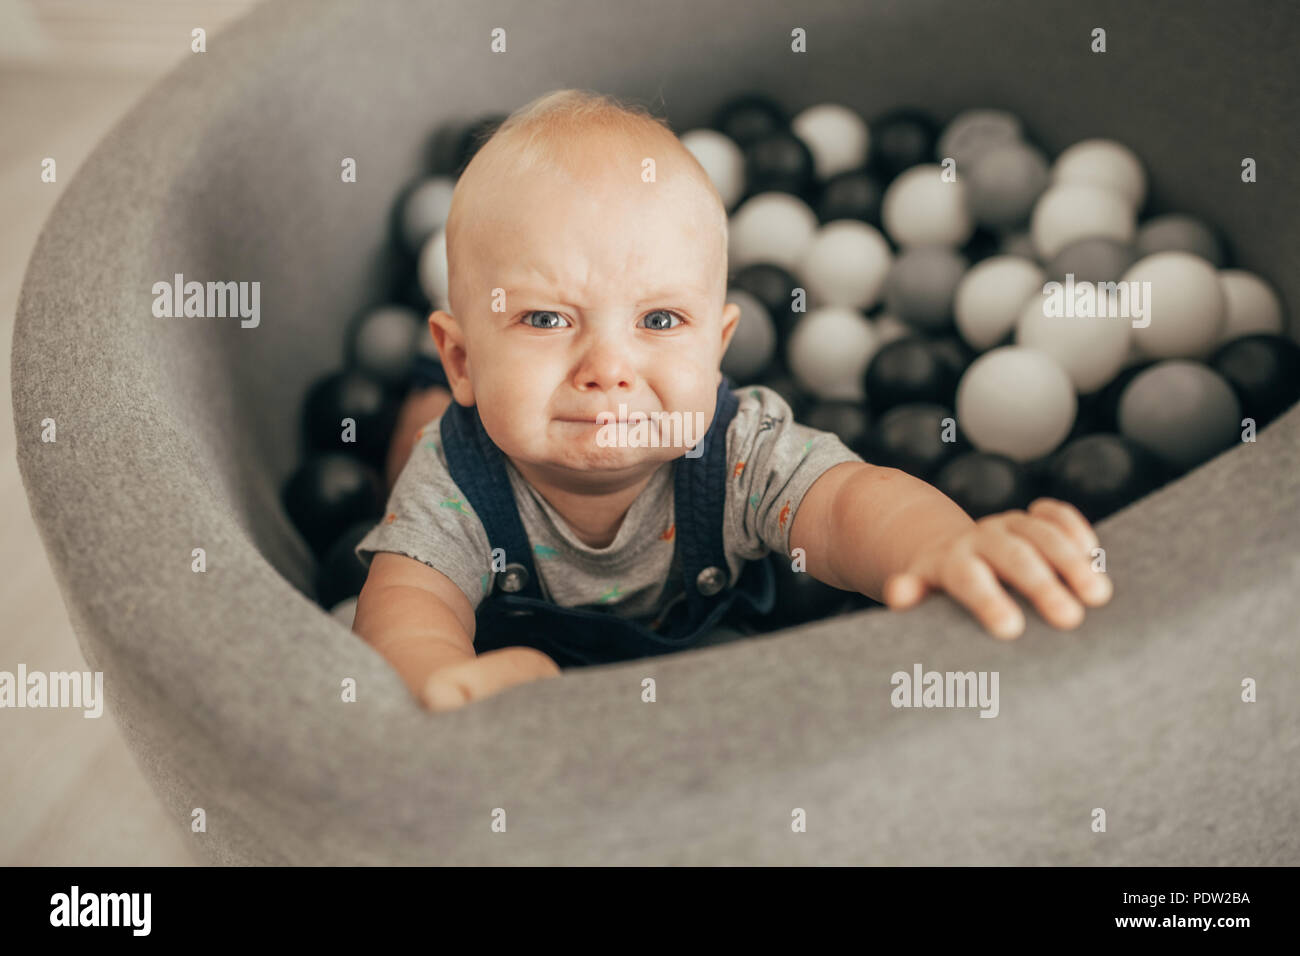 Tearful toddler stands in basket with small balls and cries. Top view. - Stock Image